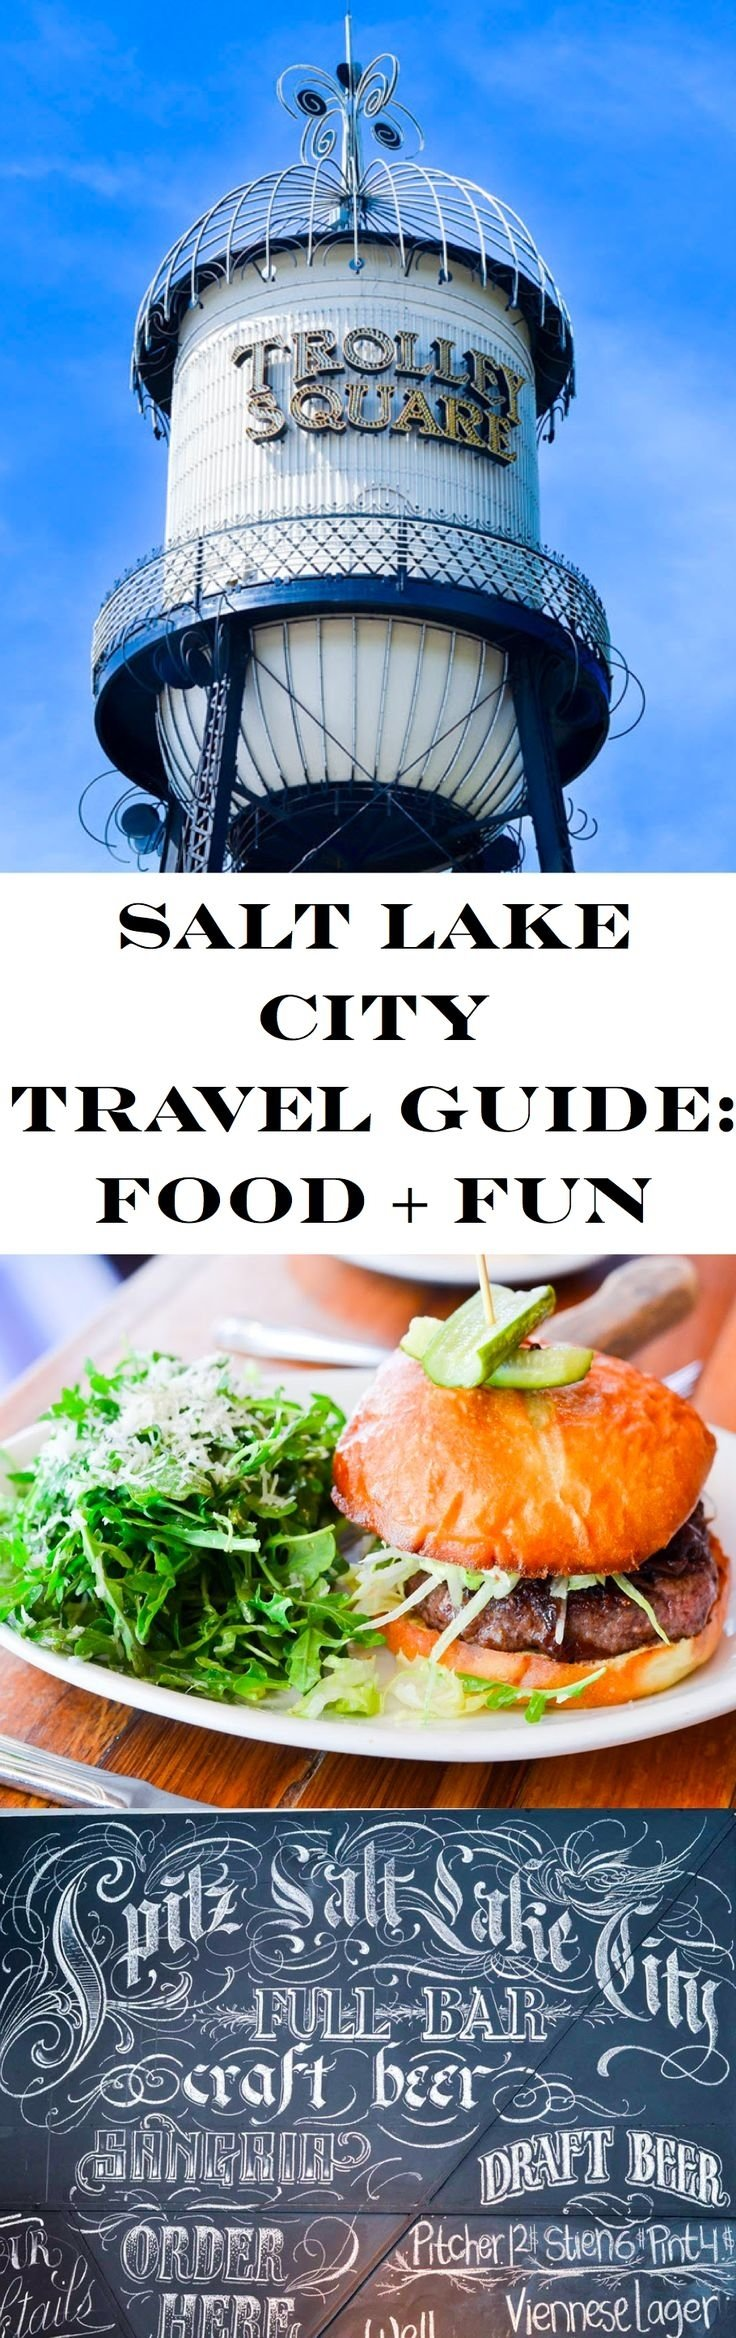 Fun date ideas salt lake city